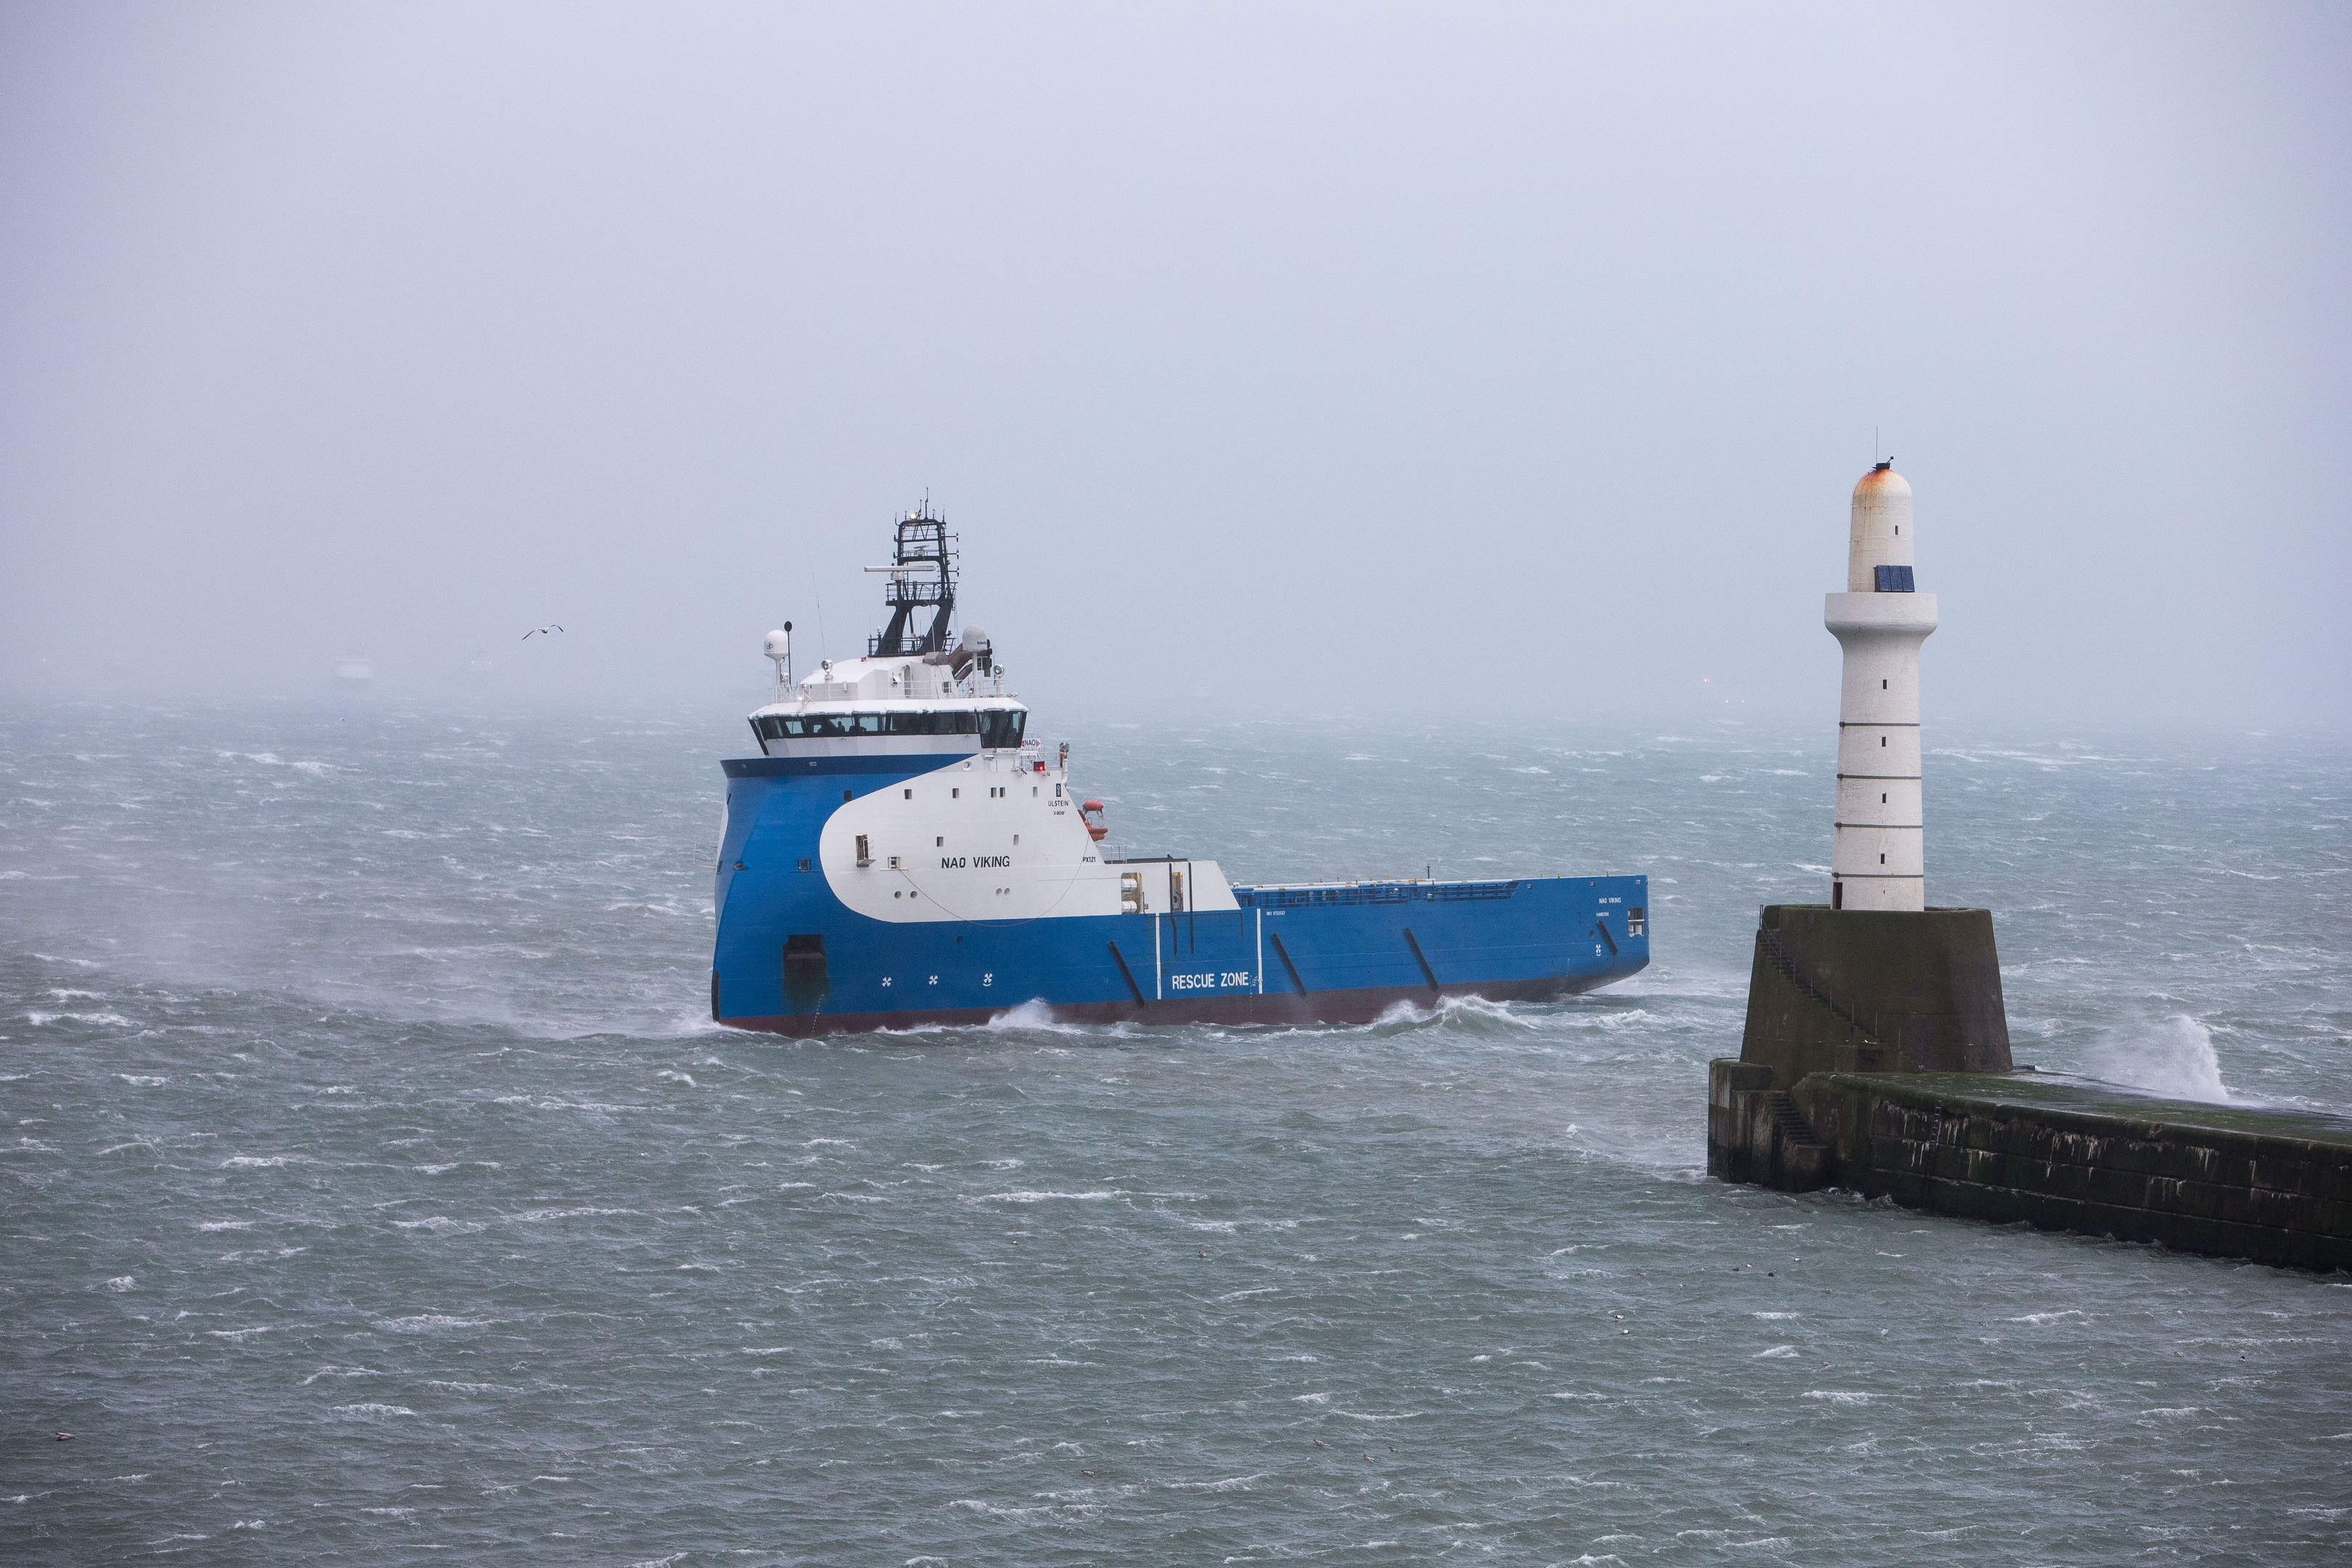 A offshore supply vessel struggling with the conditions on its return to Aberdeen Harbour.